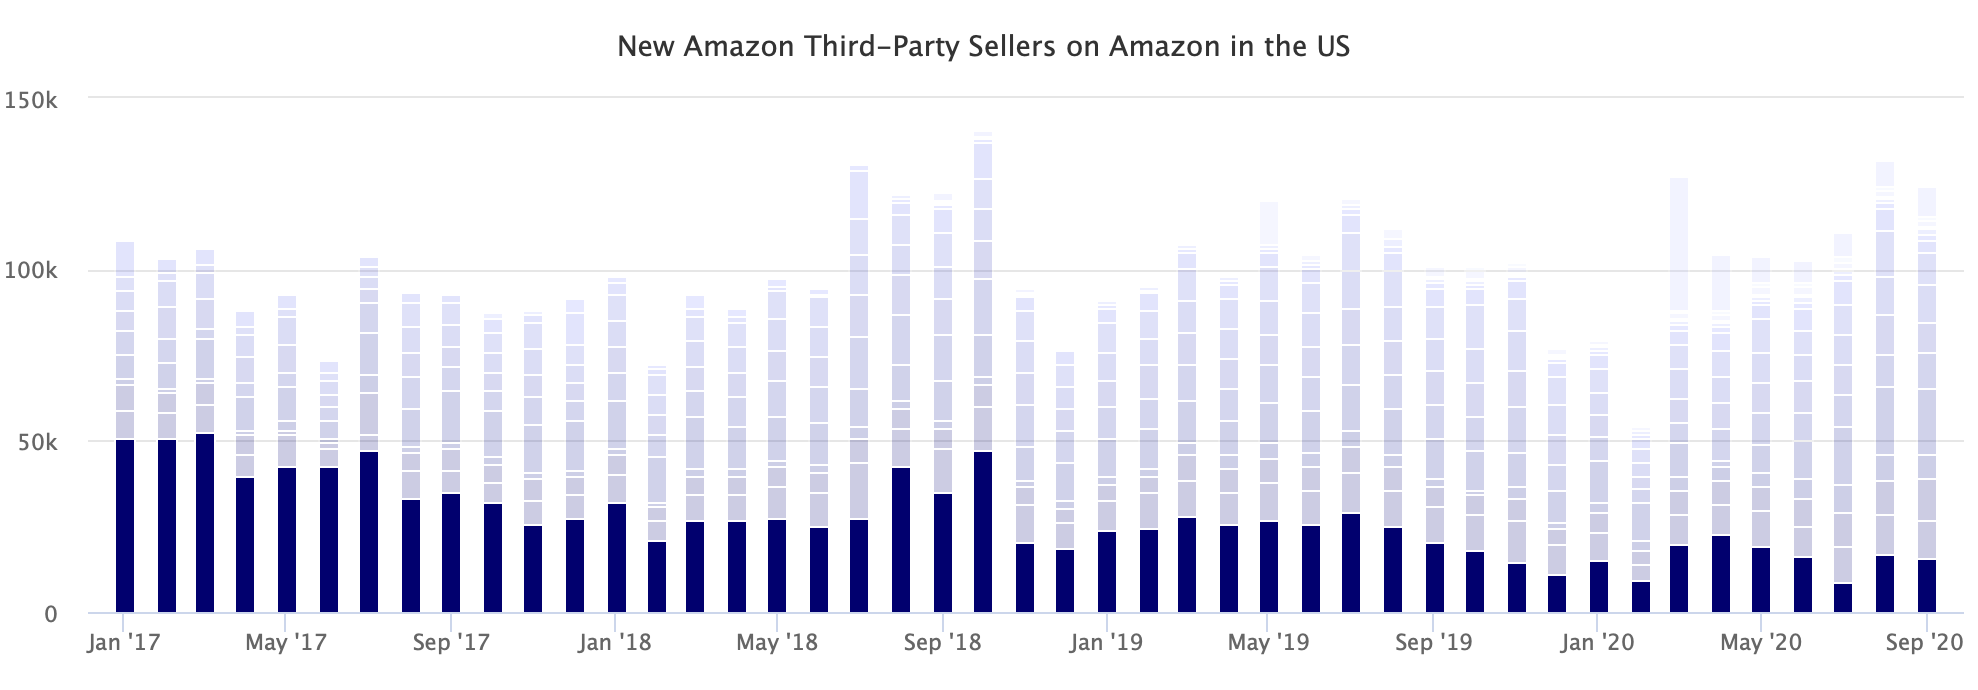 New Amazon Third-Party Sellers on Amazon in the US